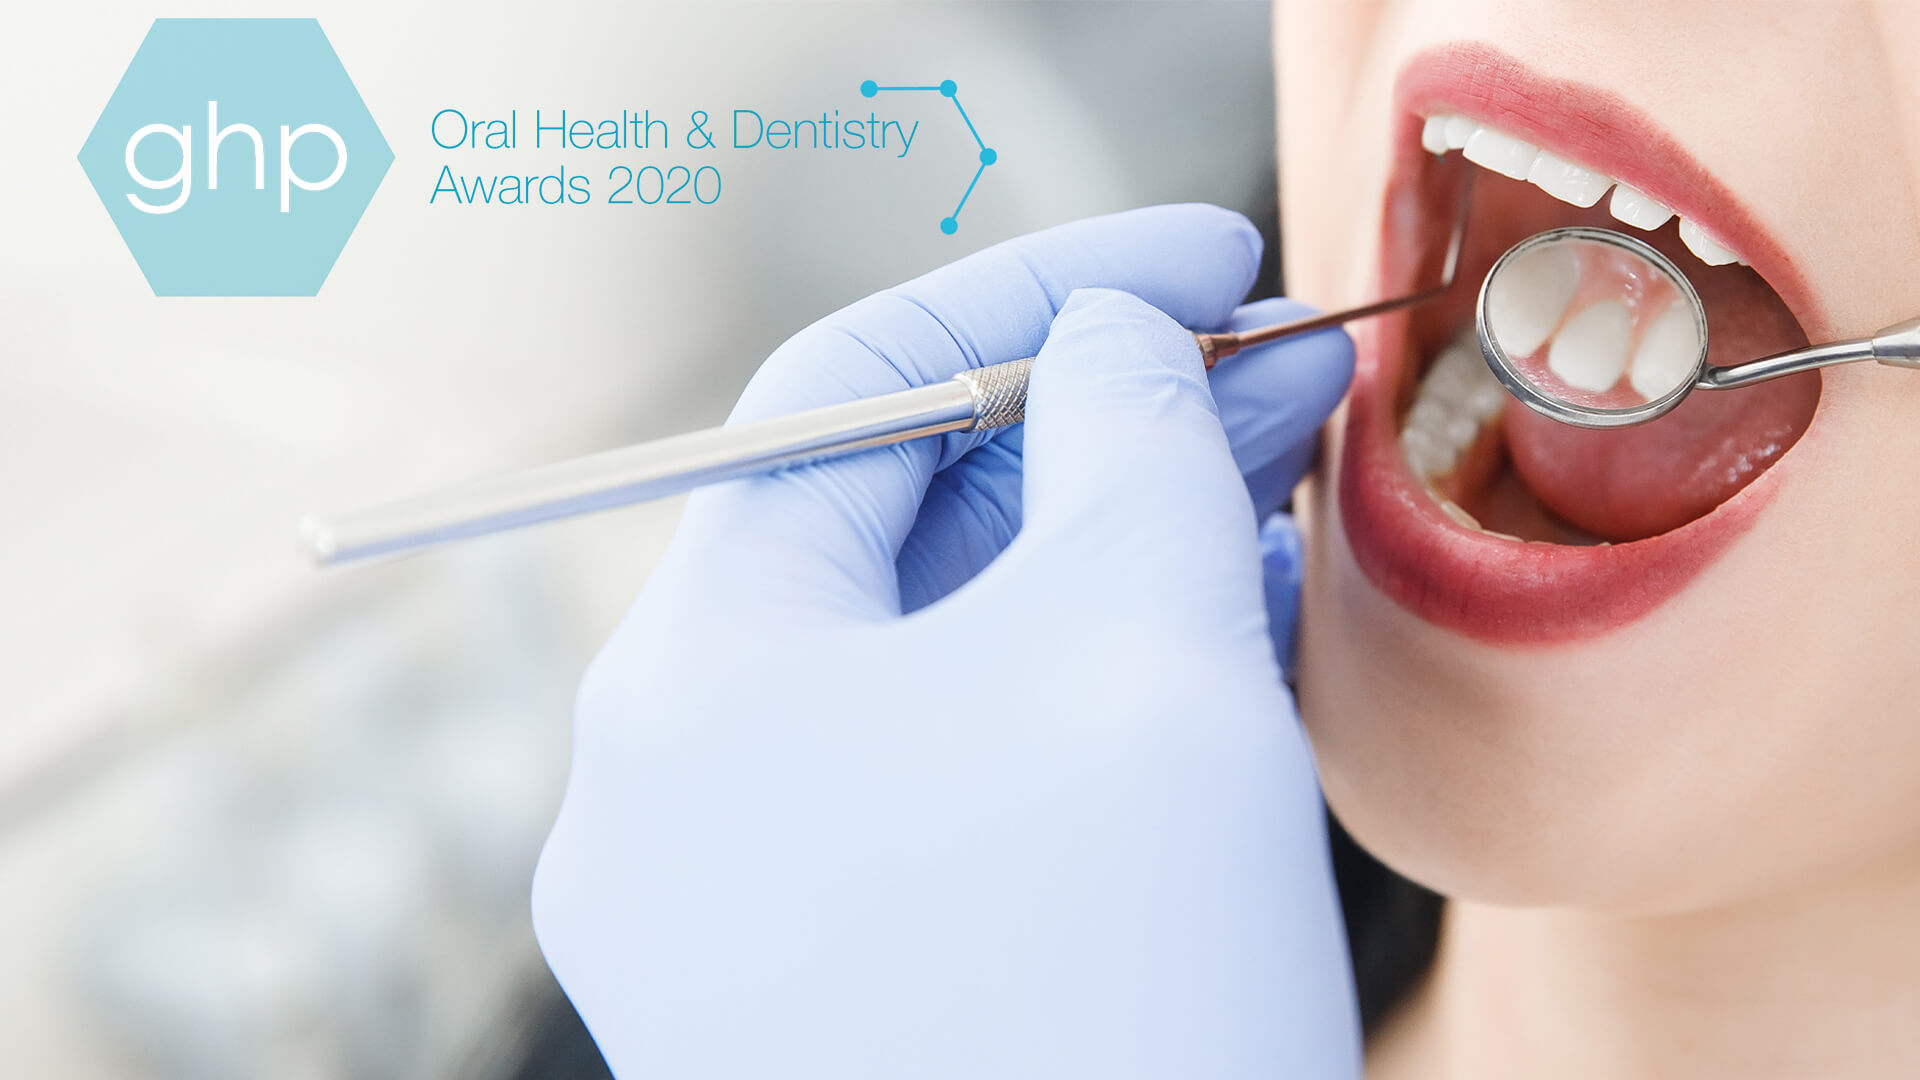 oral health and denitstry 2